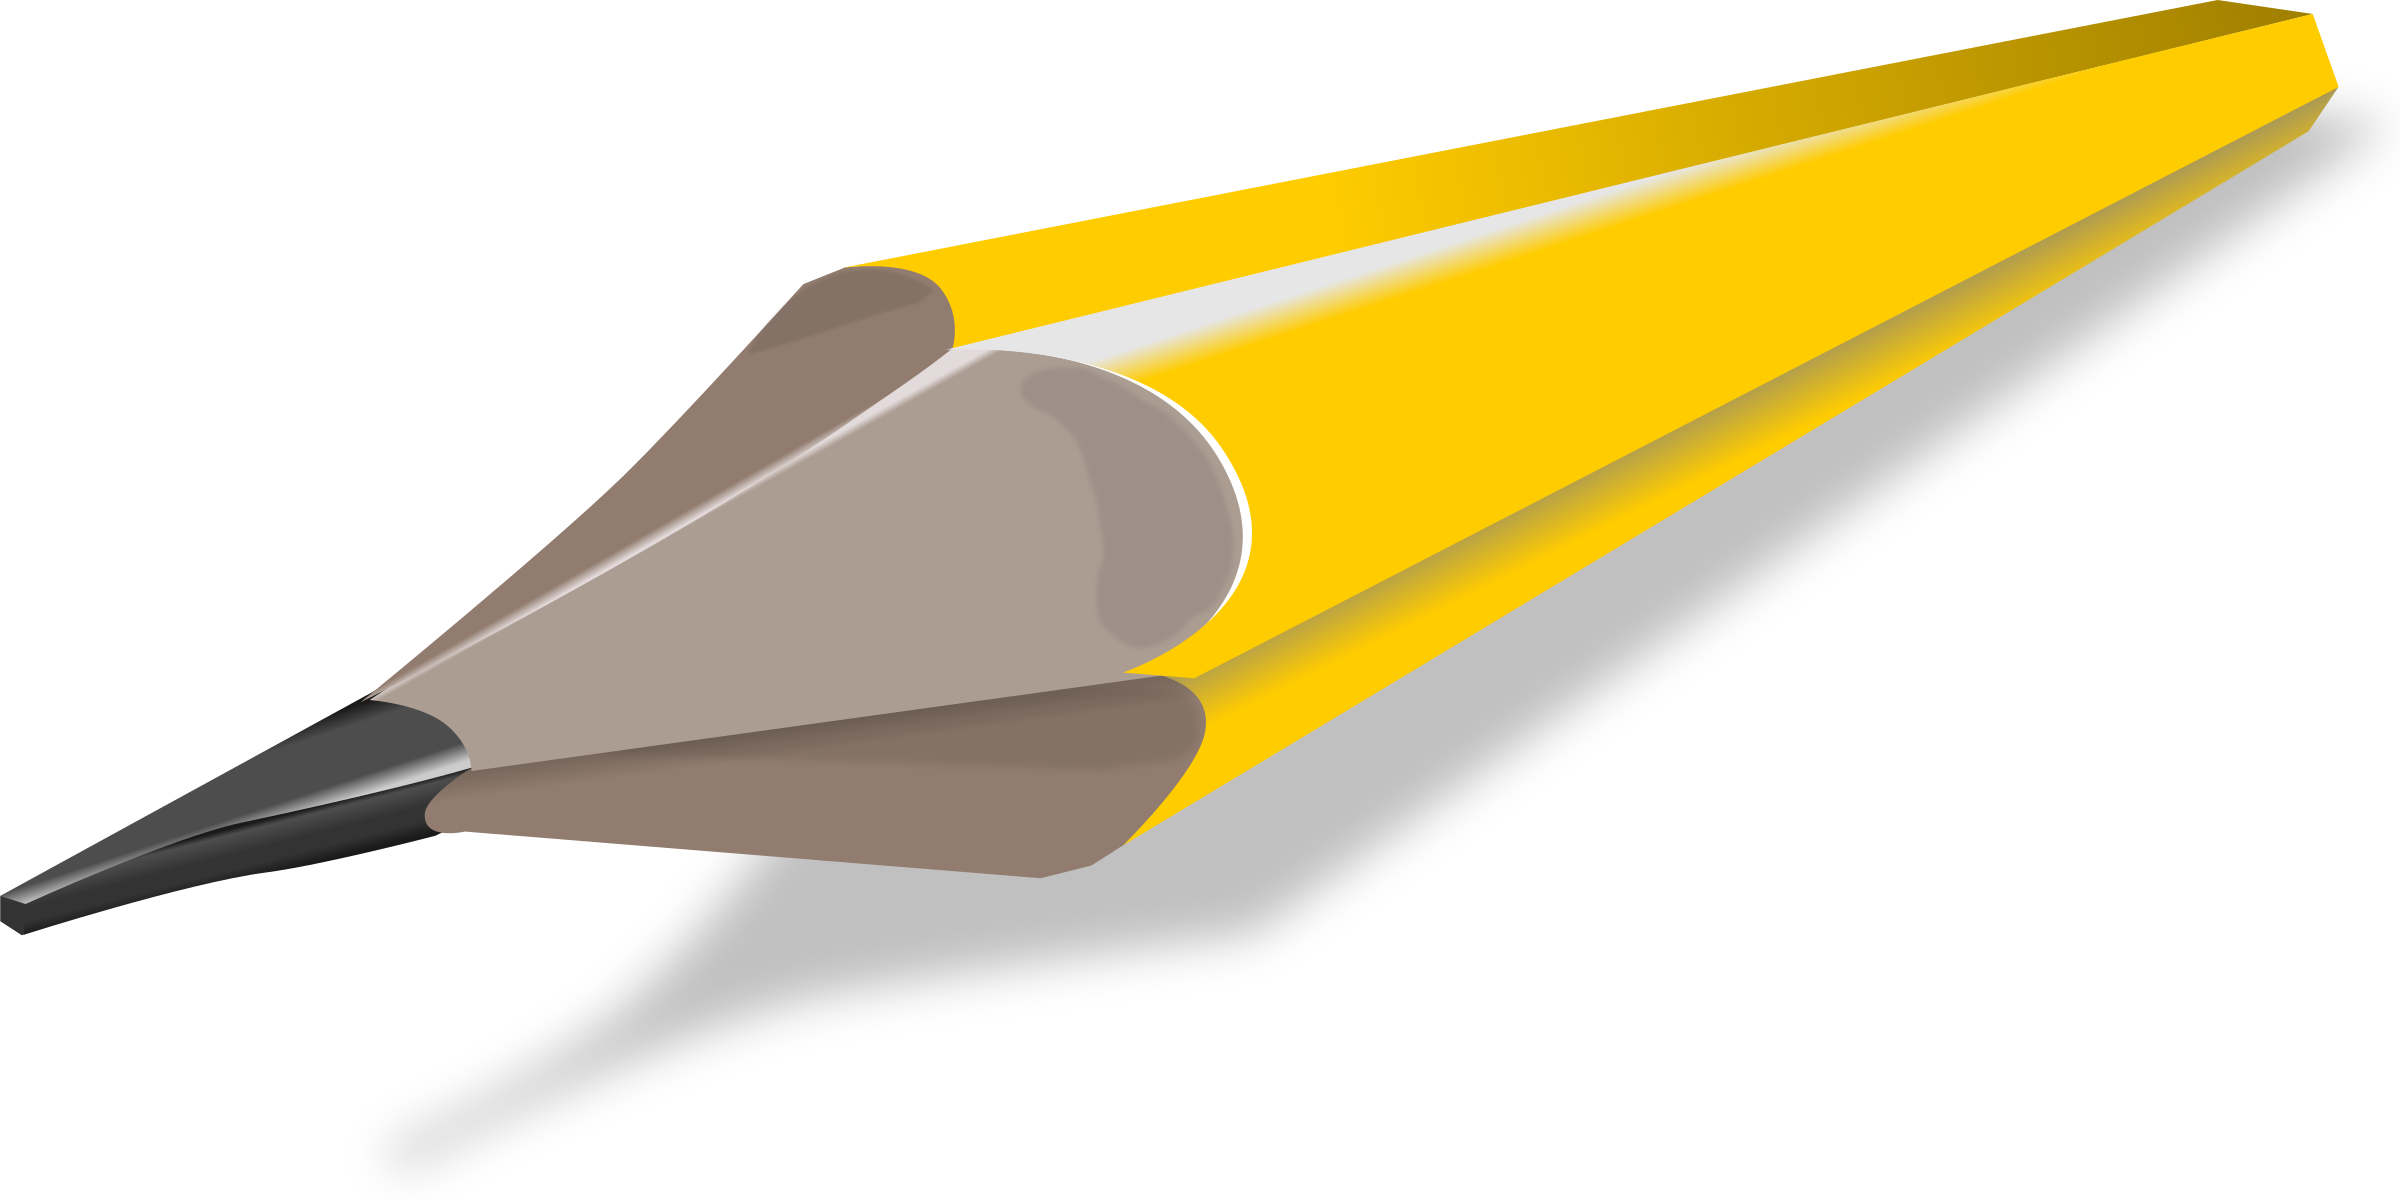 Clipart - pencil